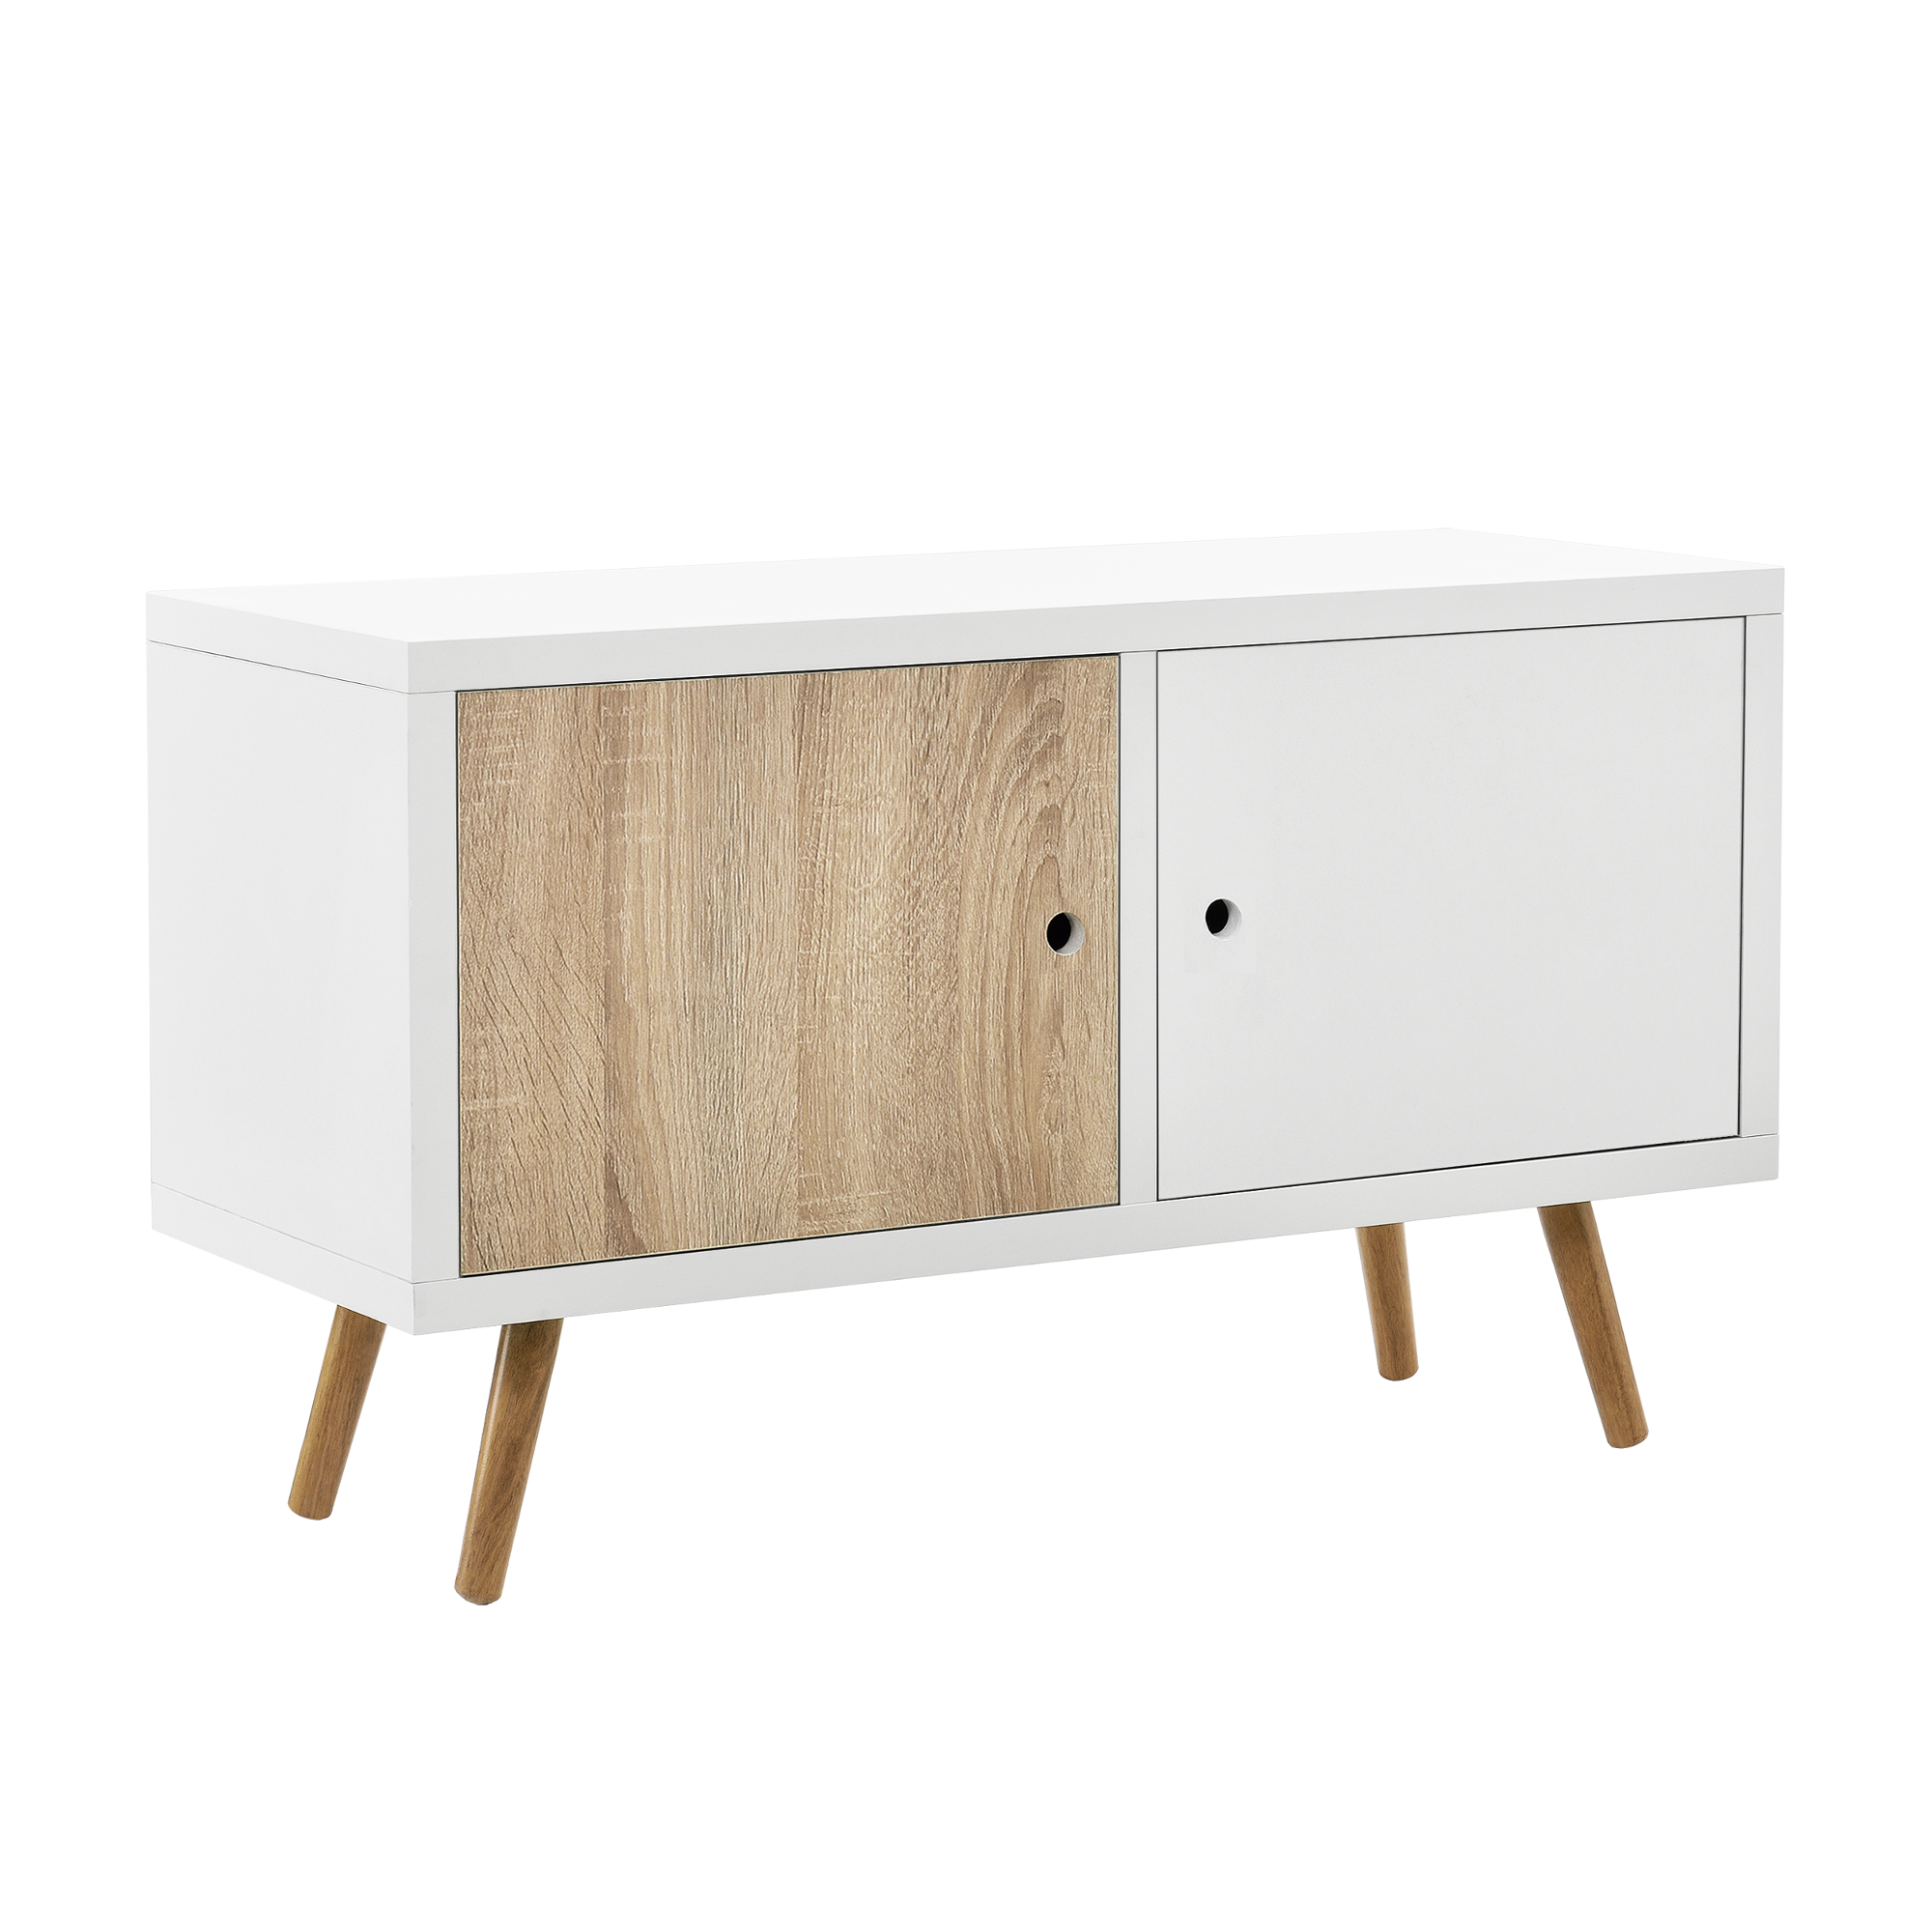 design kommode sideboard schrank beistelltisch. Black Bedroom Furniture Sets. Home Design Ideas